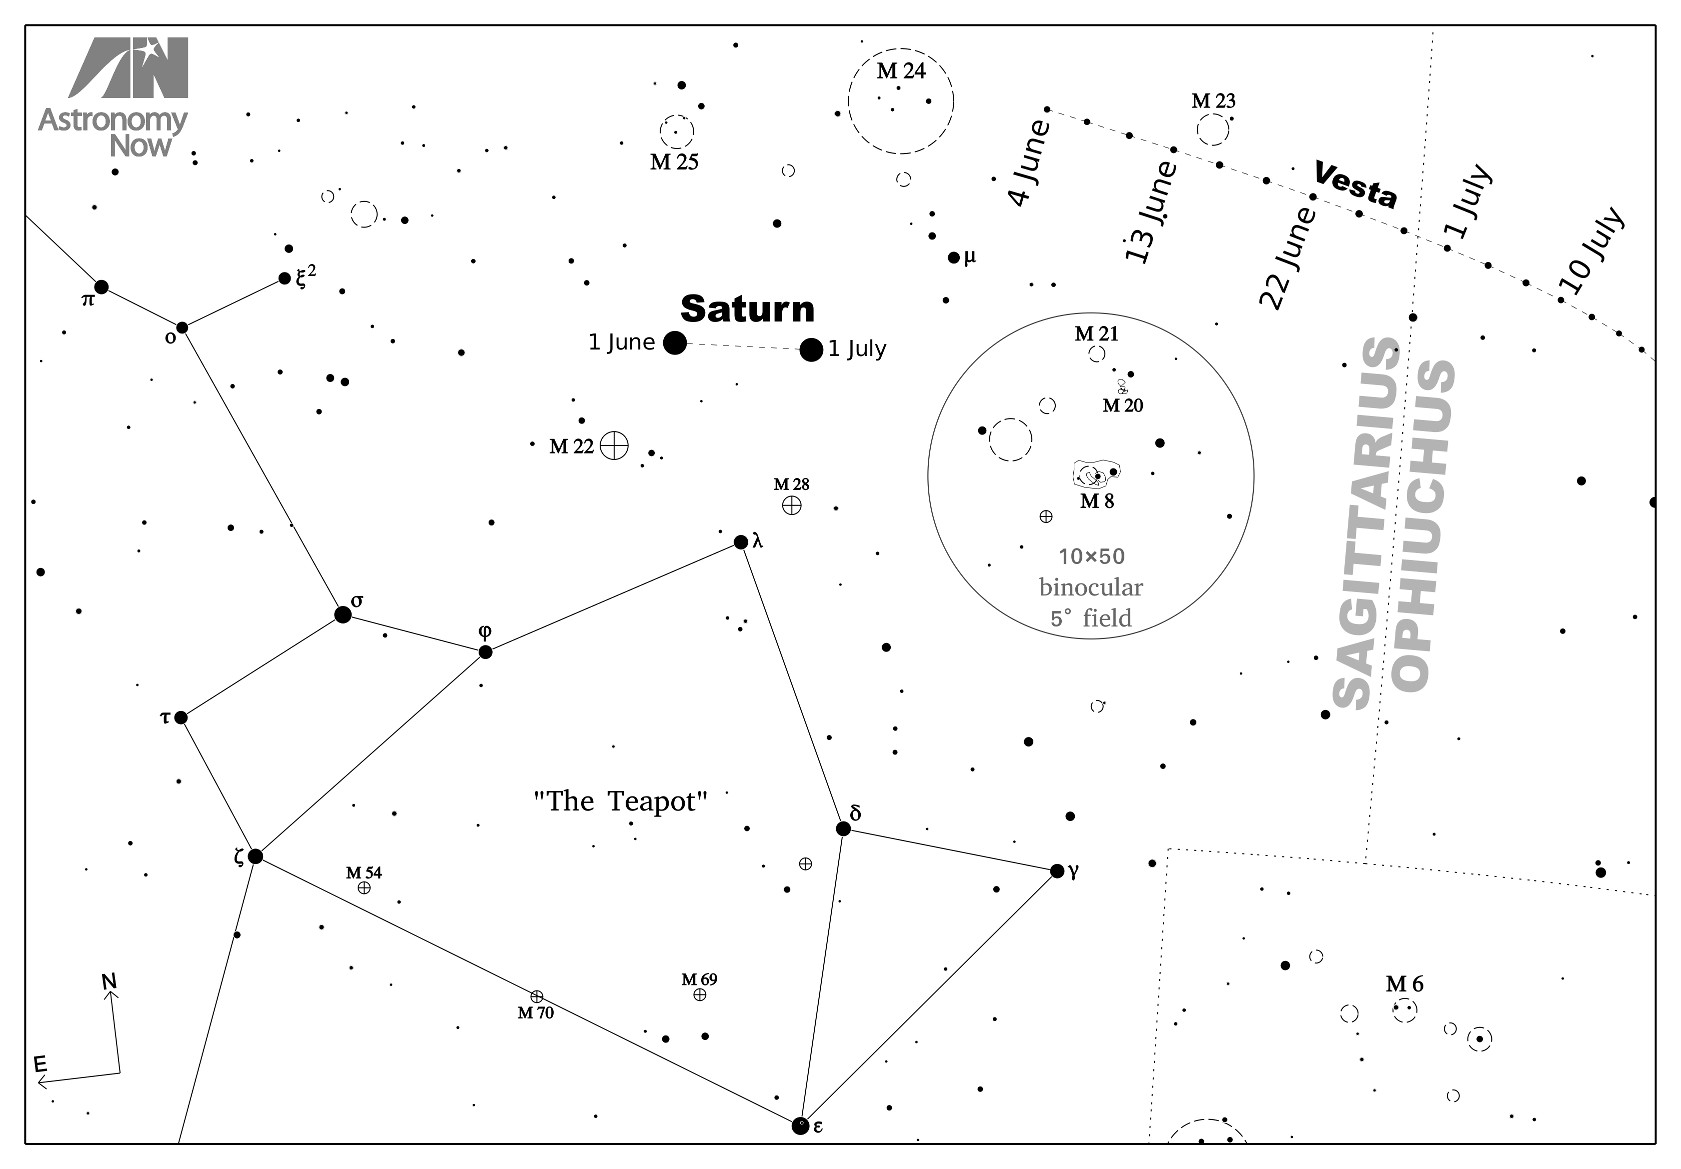 this finder chart for magnitude 54 asteroid vesta for the period june july 2018 is centred on a region of the constellation sagittarius that is highest in